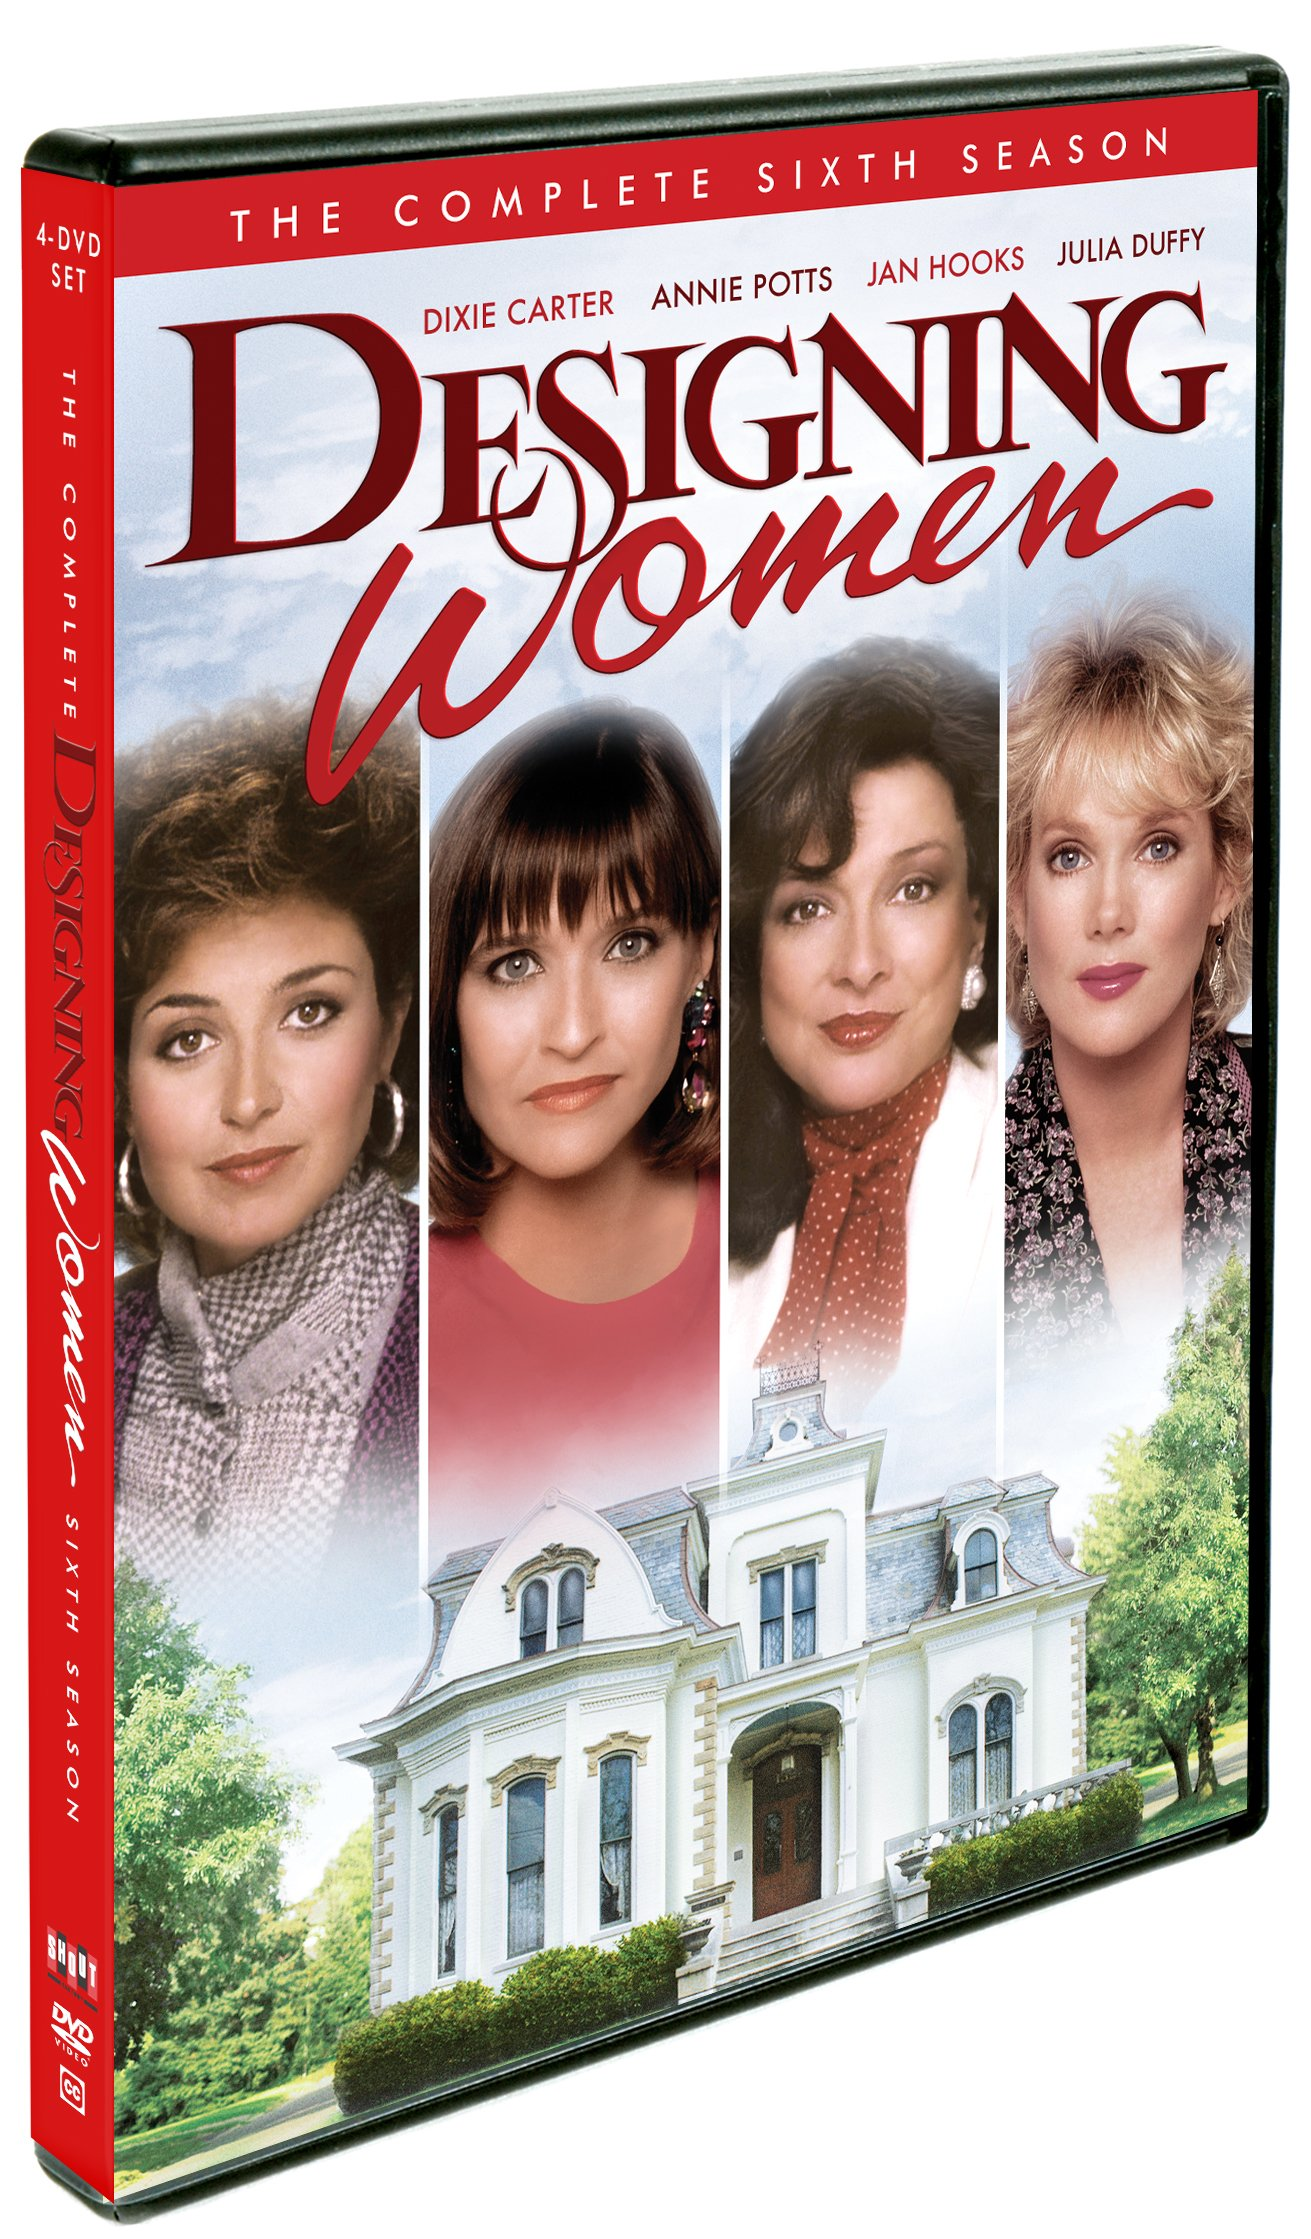 DVD : Designing Women: The Complete Sixth Season (Full Frame, Dolby, 4PC)